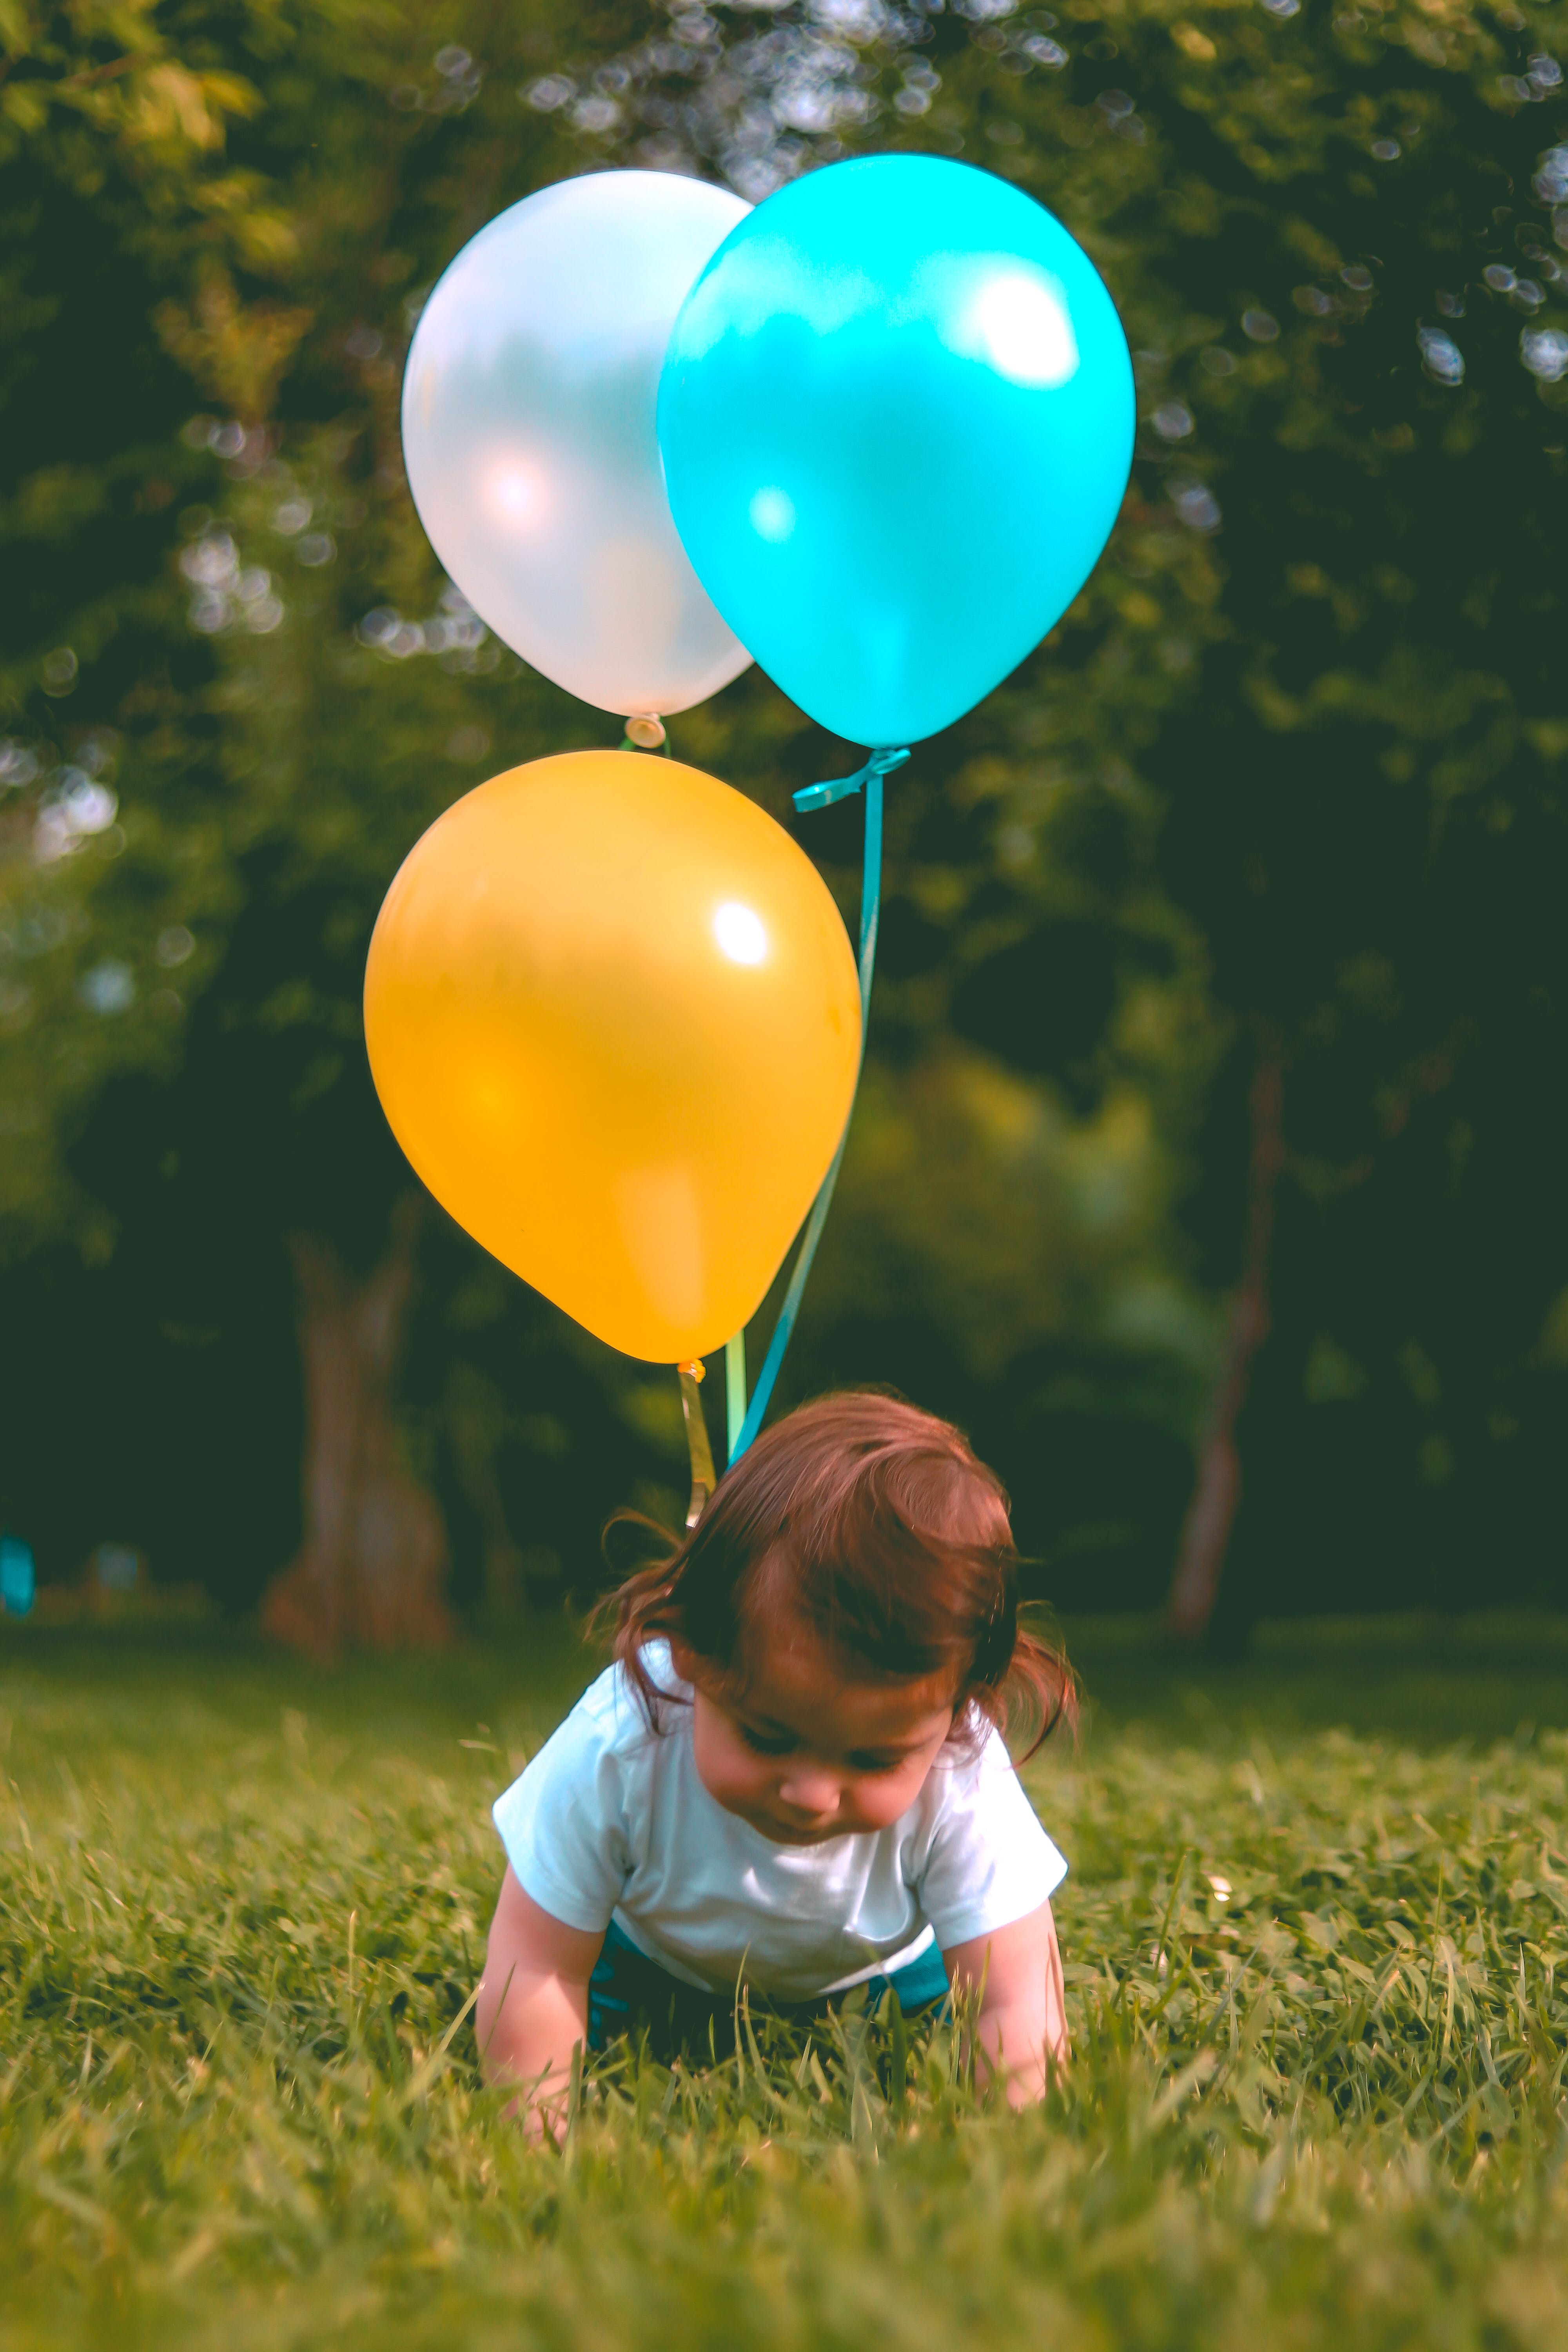 Baby Wearing White T-shirt Holding Three Yellow, Blue, and White Balloons on Green Grass Near Woods